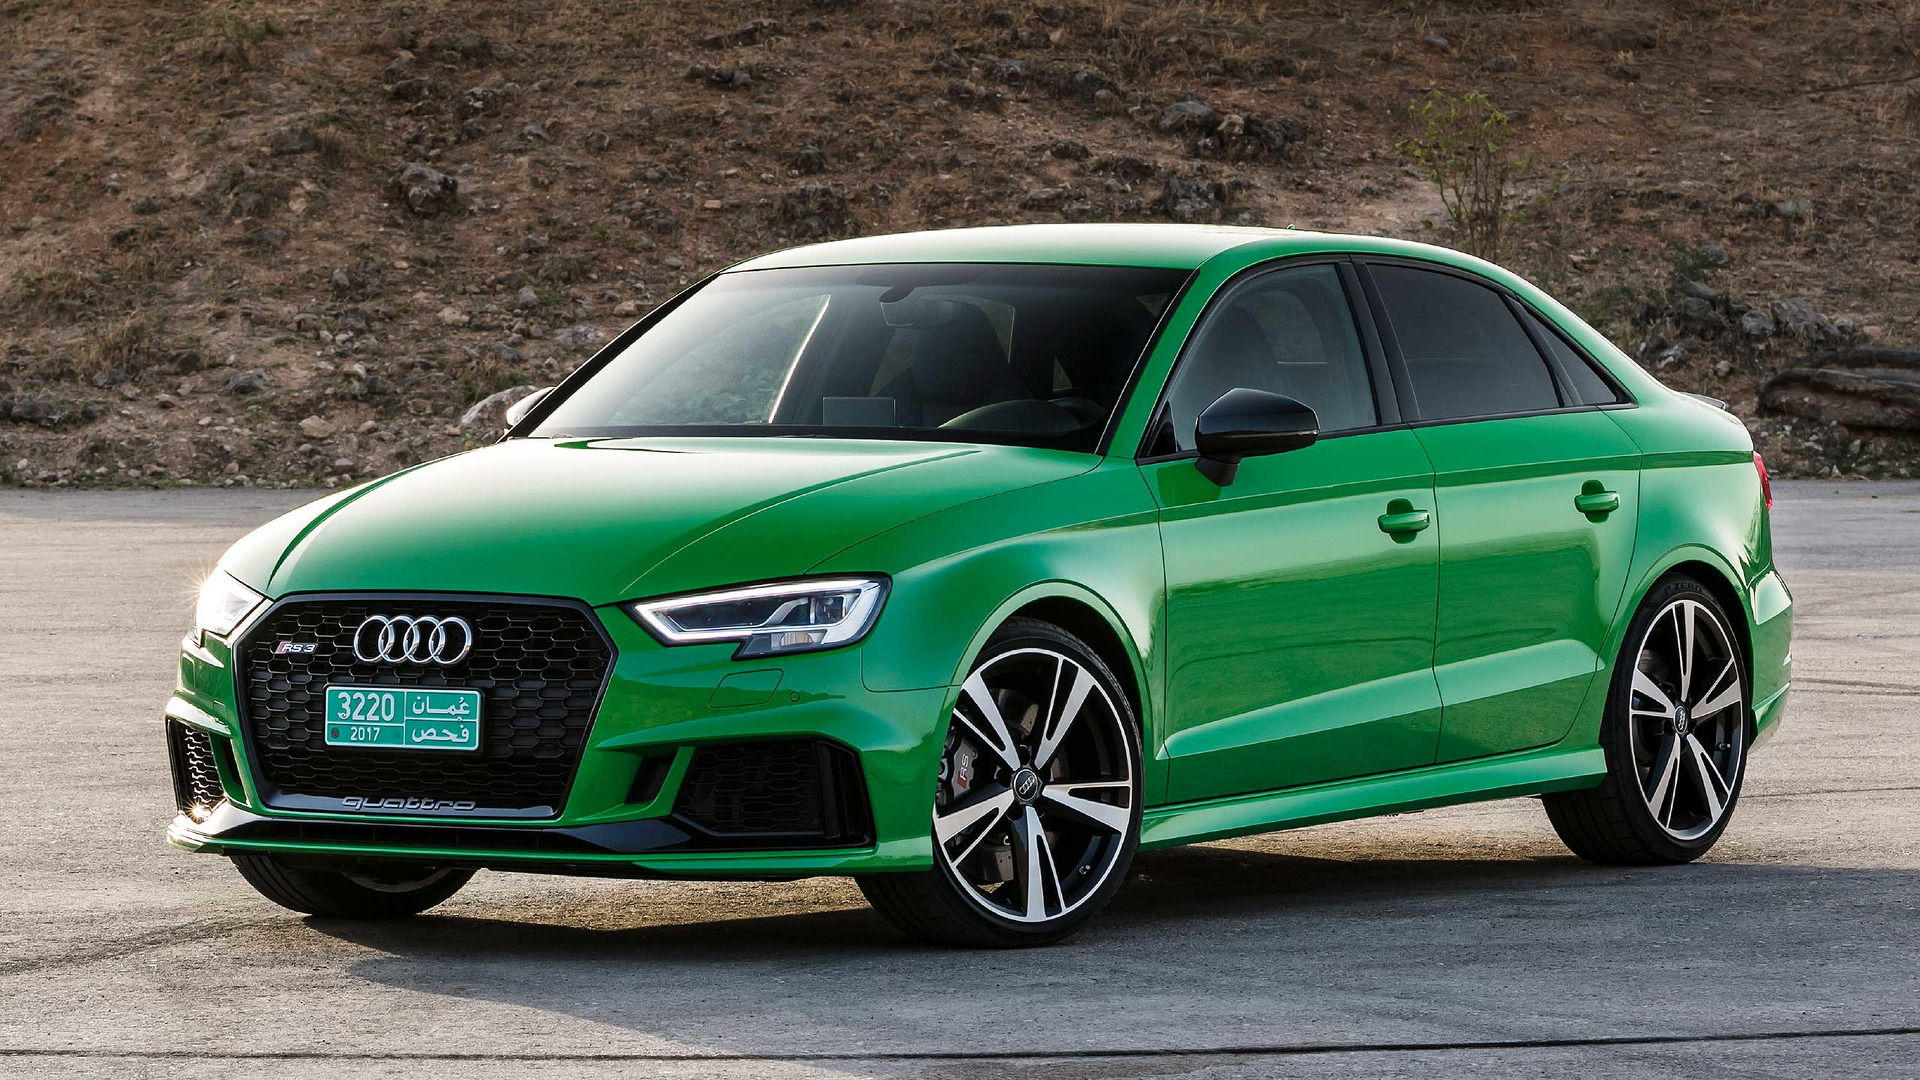 2018 Audi Rs3 Sedan First Drive The No Compromise Compromise